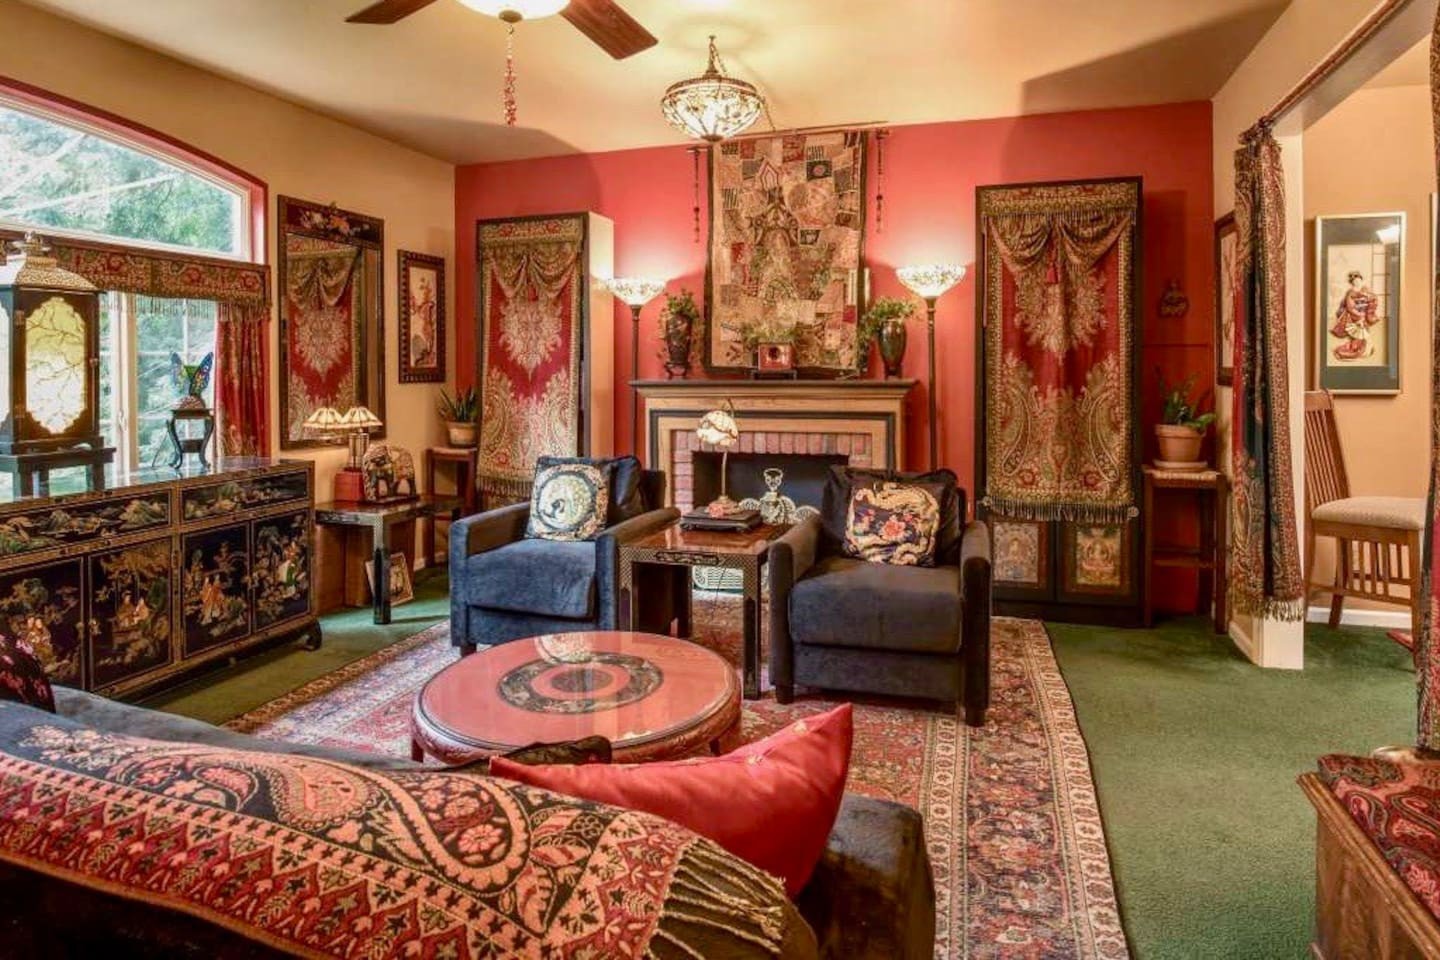 The front room welcomes you with light, warmth, comfort, books, & TV (behind the tapestries)...enjoy everything from robust conversations to meaningful quiet time, from browsing though the library to gazing at rich greenery in temperate comfort! :-)